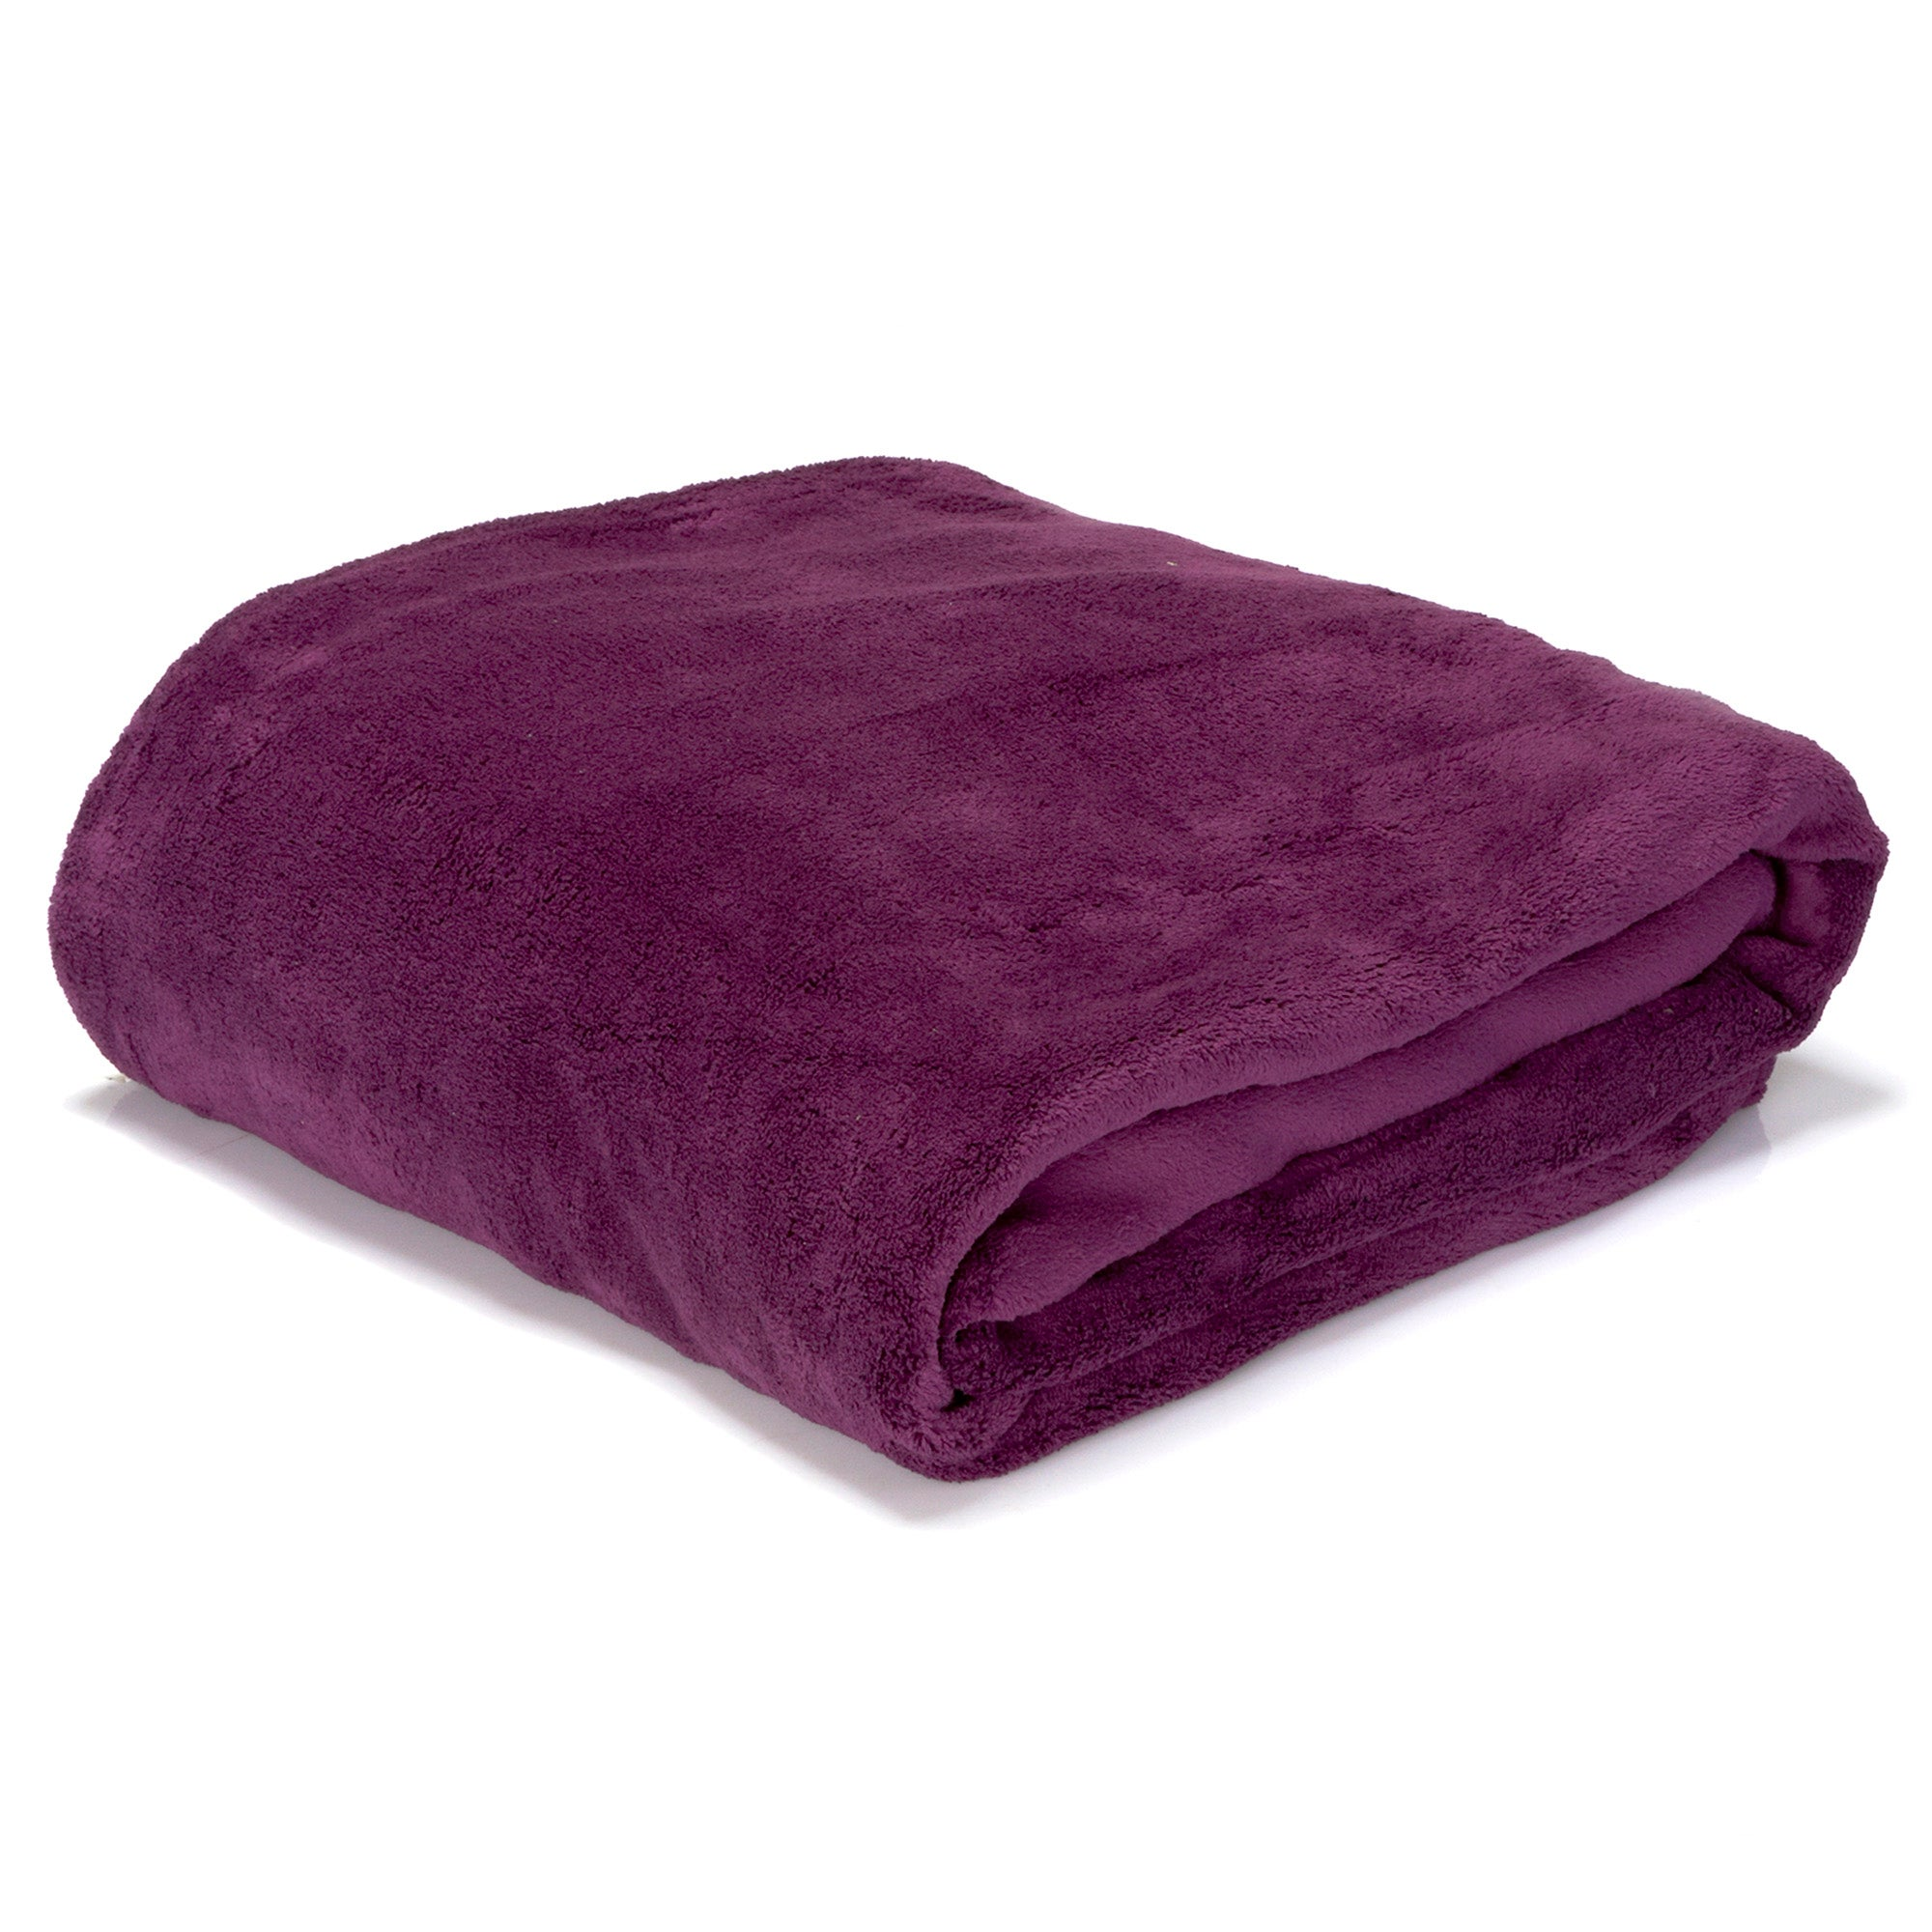 Blackcurrant Winter Seriously Soft Blanket